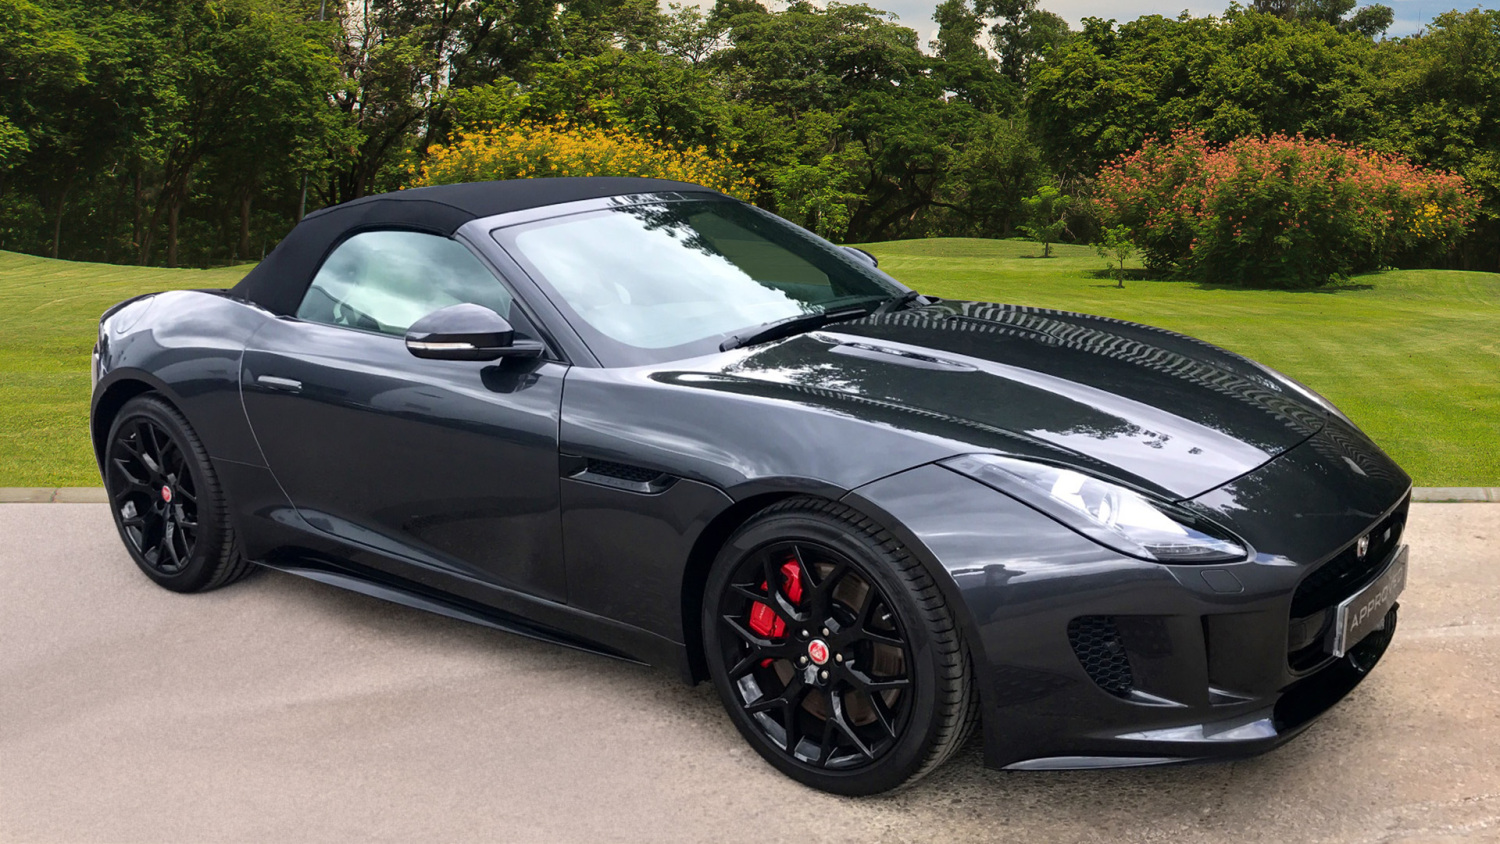 used jaguar f type 3 0 supercharged v6 s 2dr auto awd petrol convertible for sale in scotland. Black Bedroom Furniture Sets. Home Design Ideas